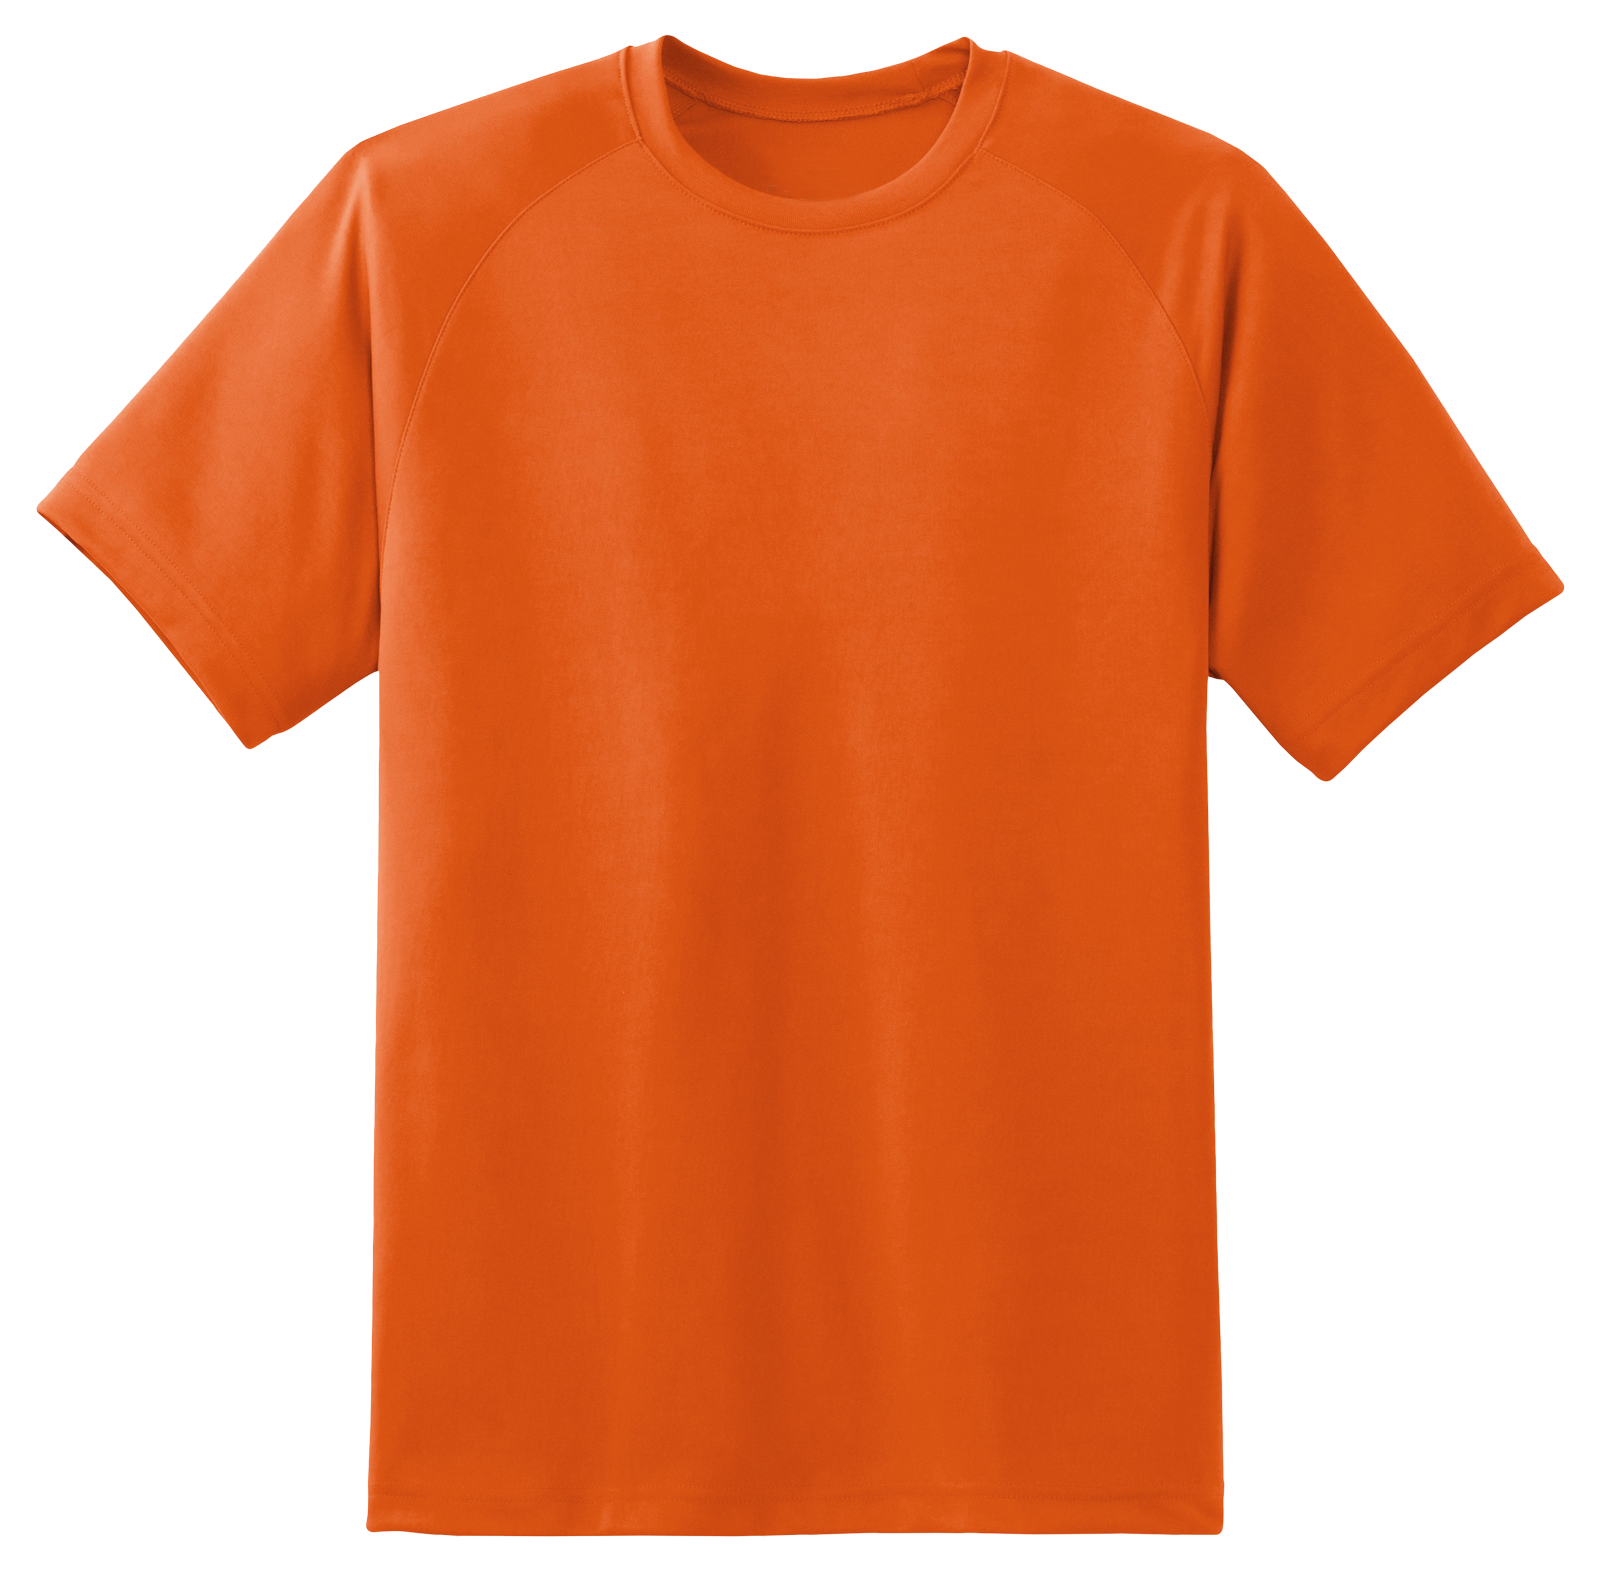 Orange T Shirt Image 25300